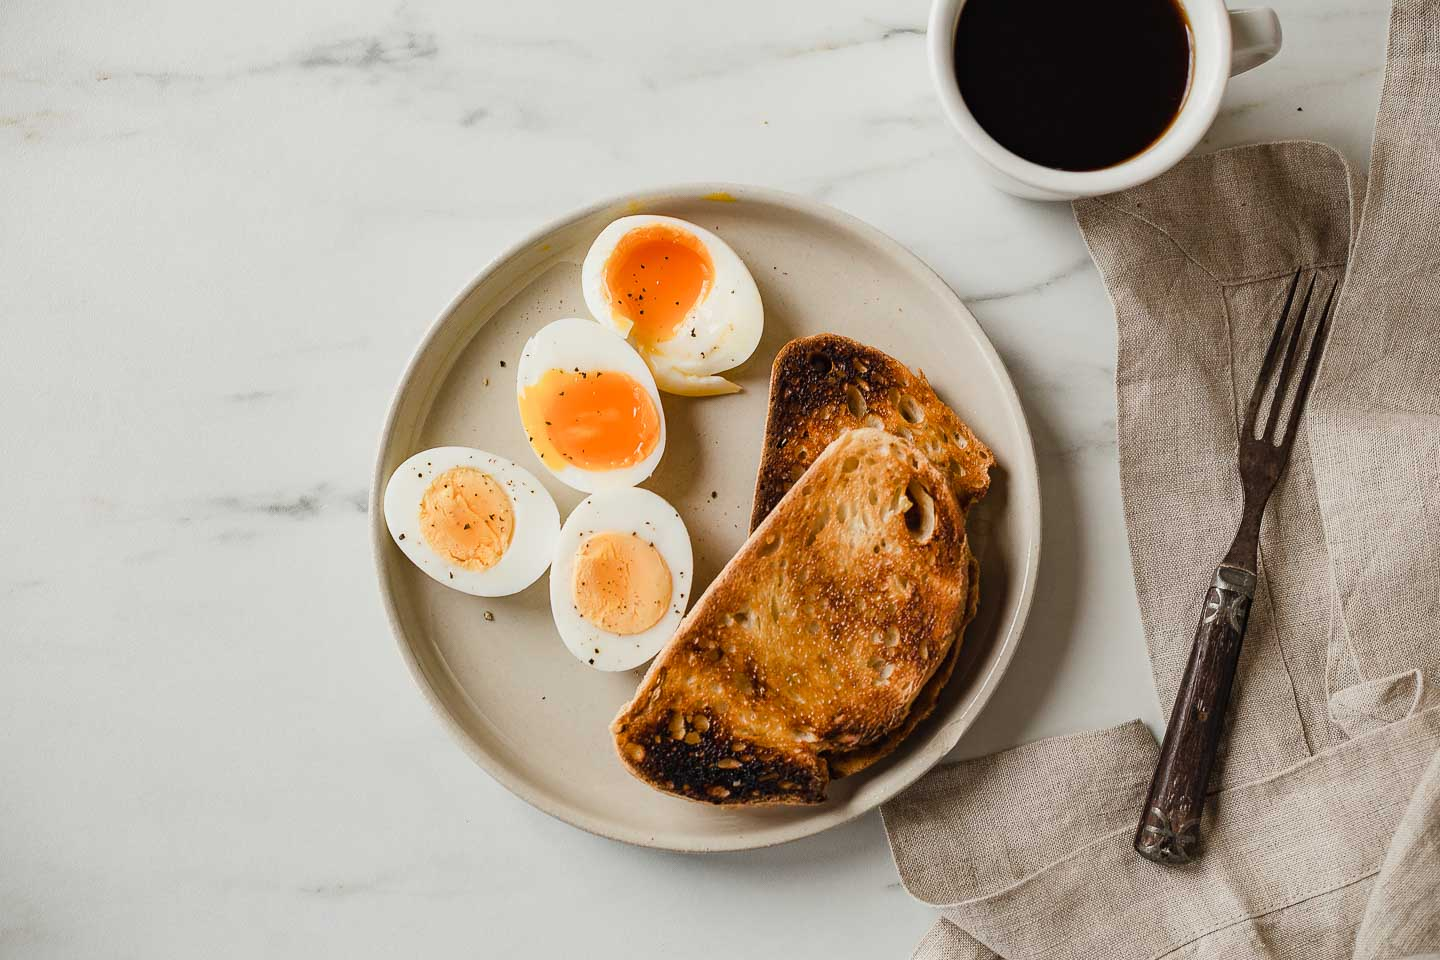 soft boiled eggs and hard boiled eggs on a plate with toast